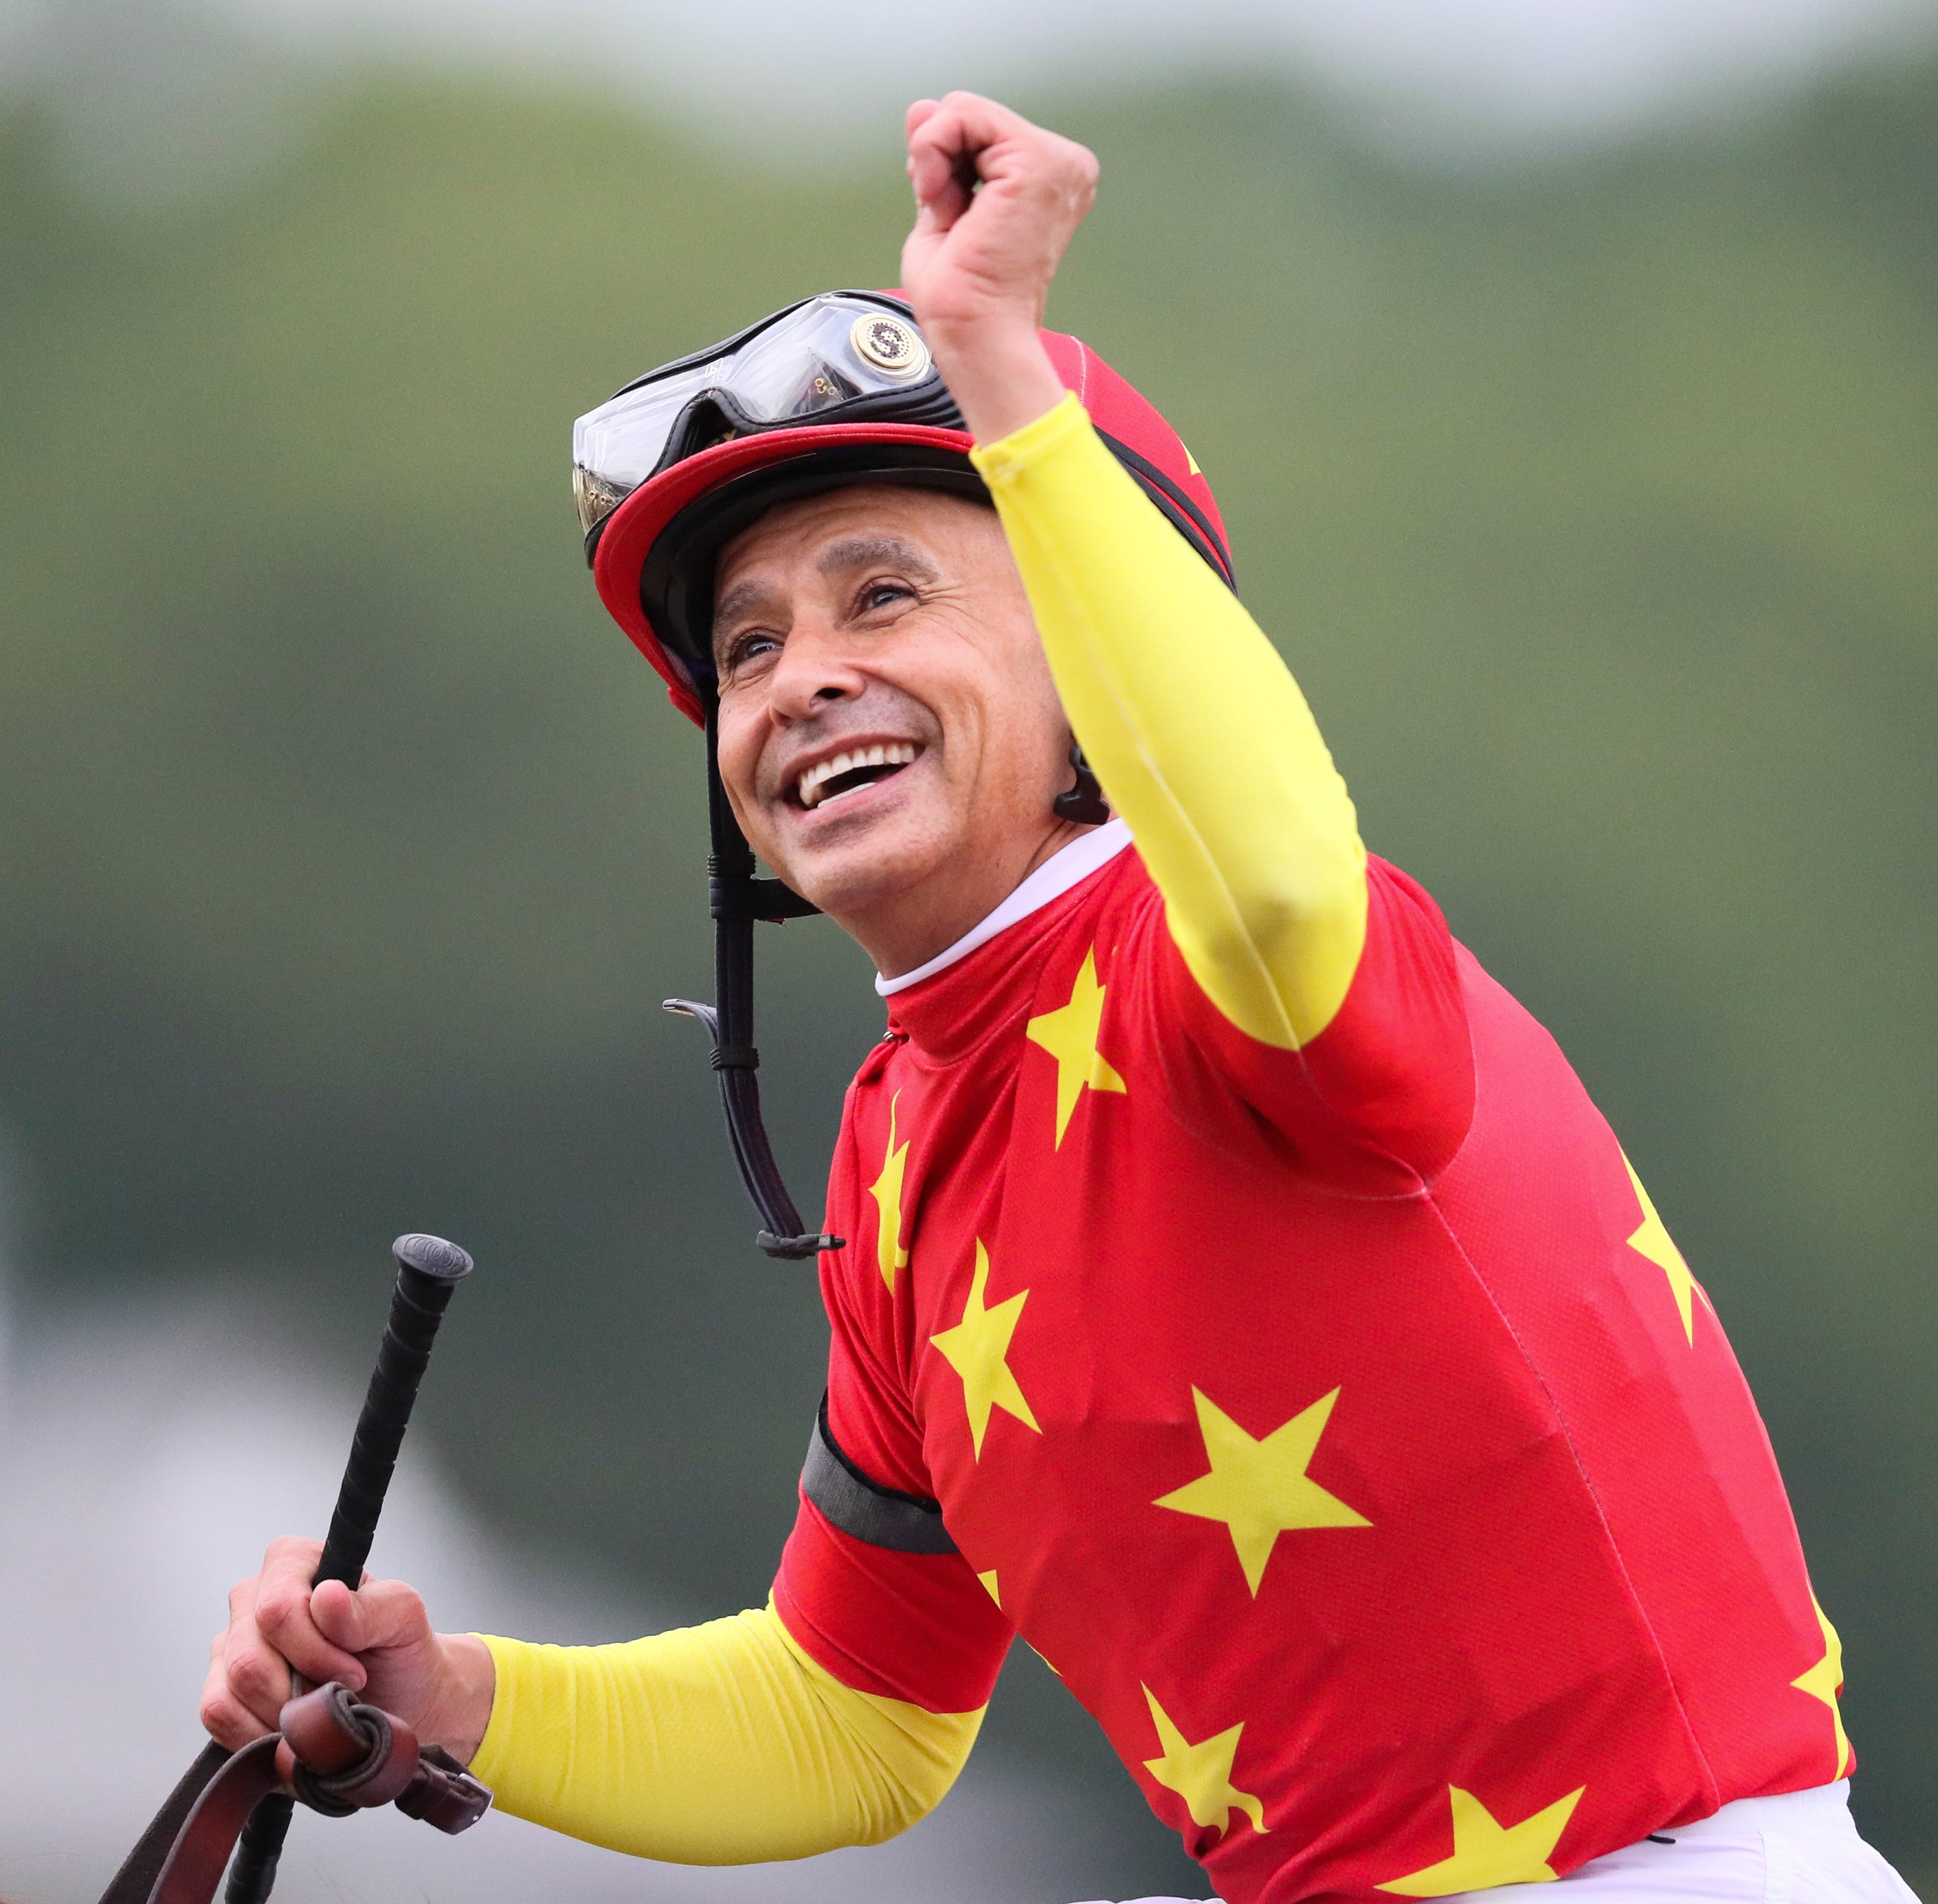 Triple Crown-winning jockey Mike Smith gets 2019 Kentucky Derby mount on Cutting Humor